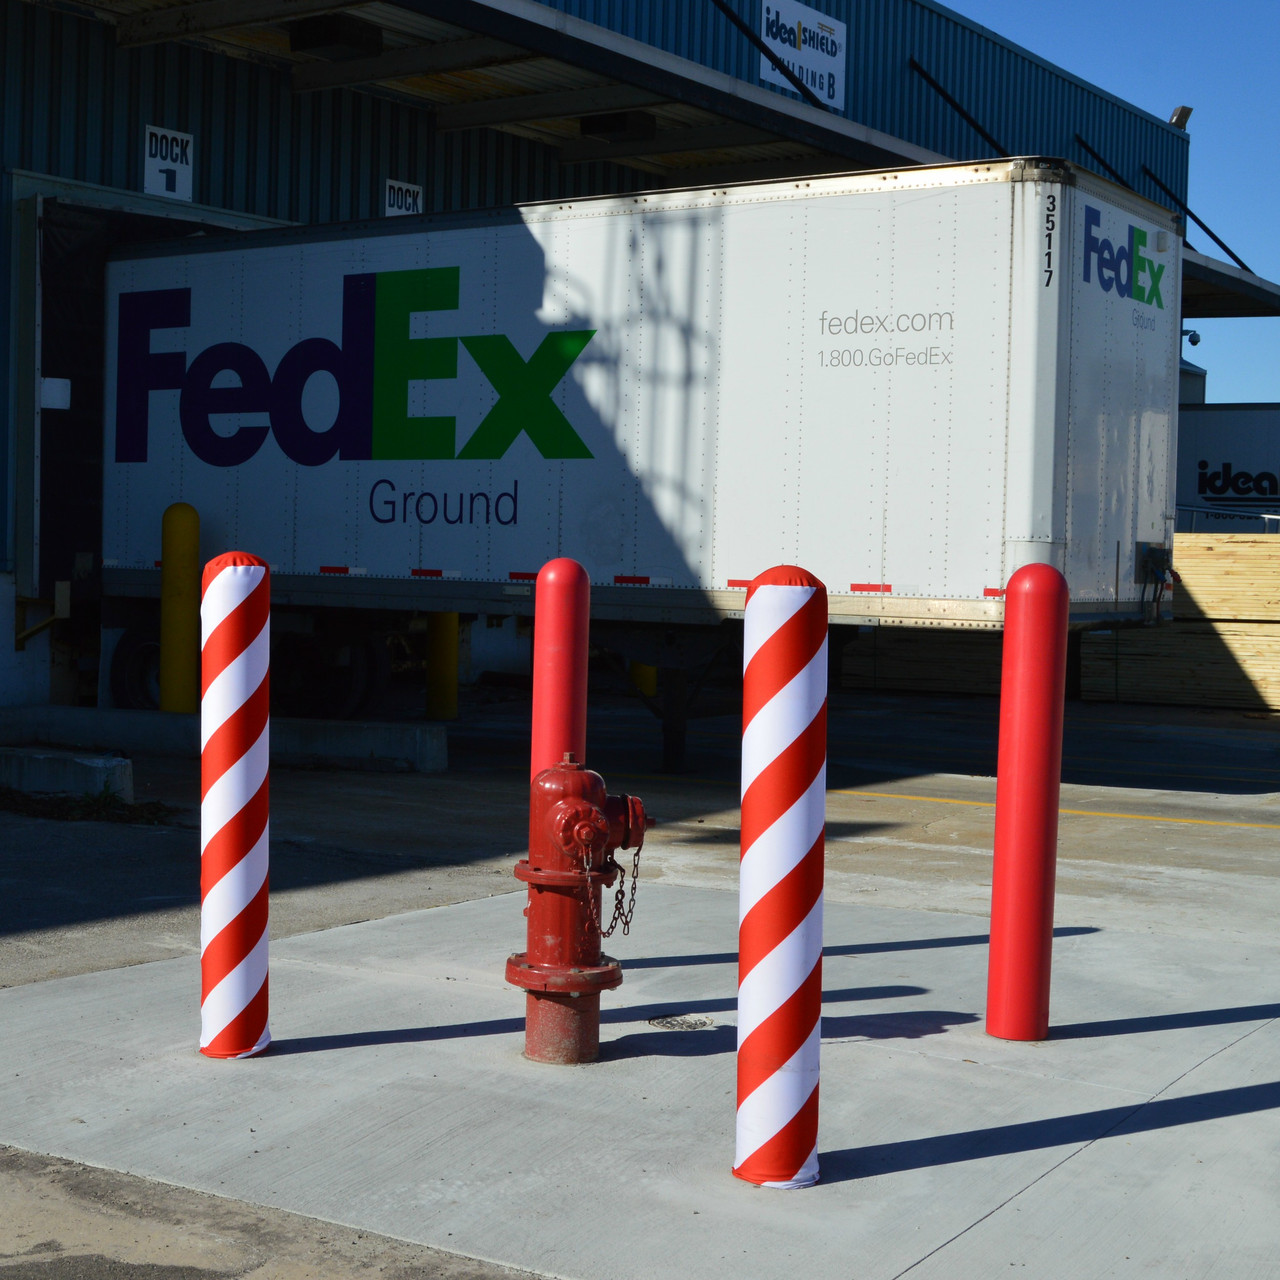 Add Some Festive Flair with Holiday Fabric Bollard Covers